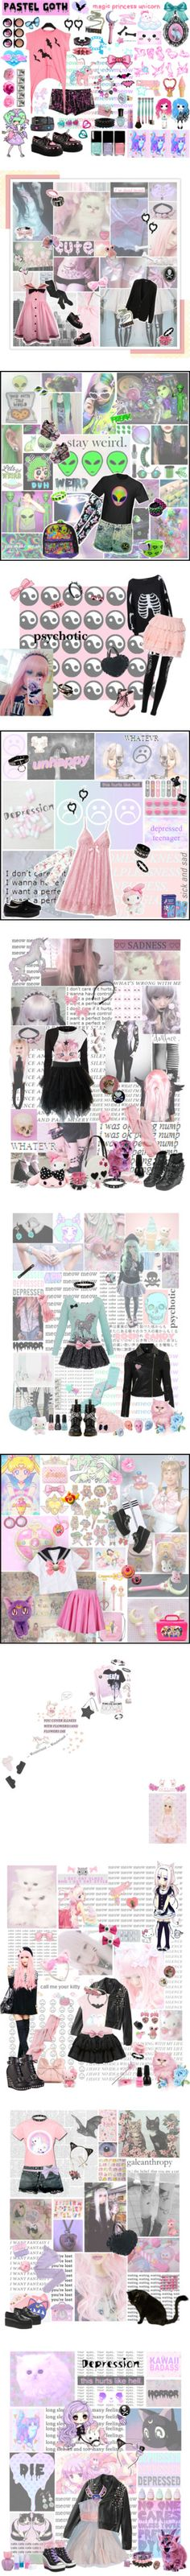 """Pastel Goth outfits - by me"" by kawaii-neko-chan ❤ liked on Polyvore"